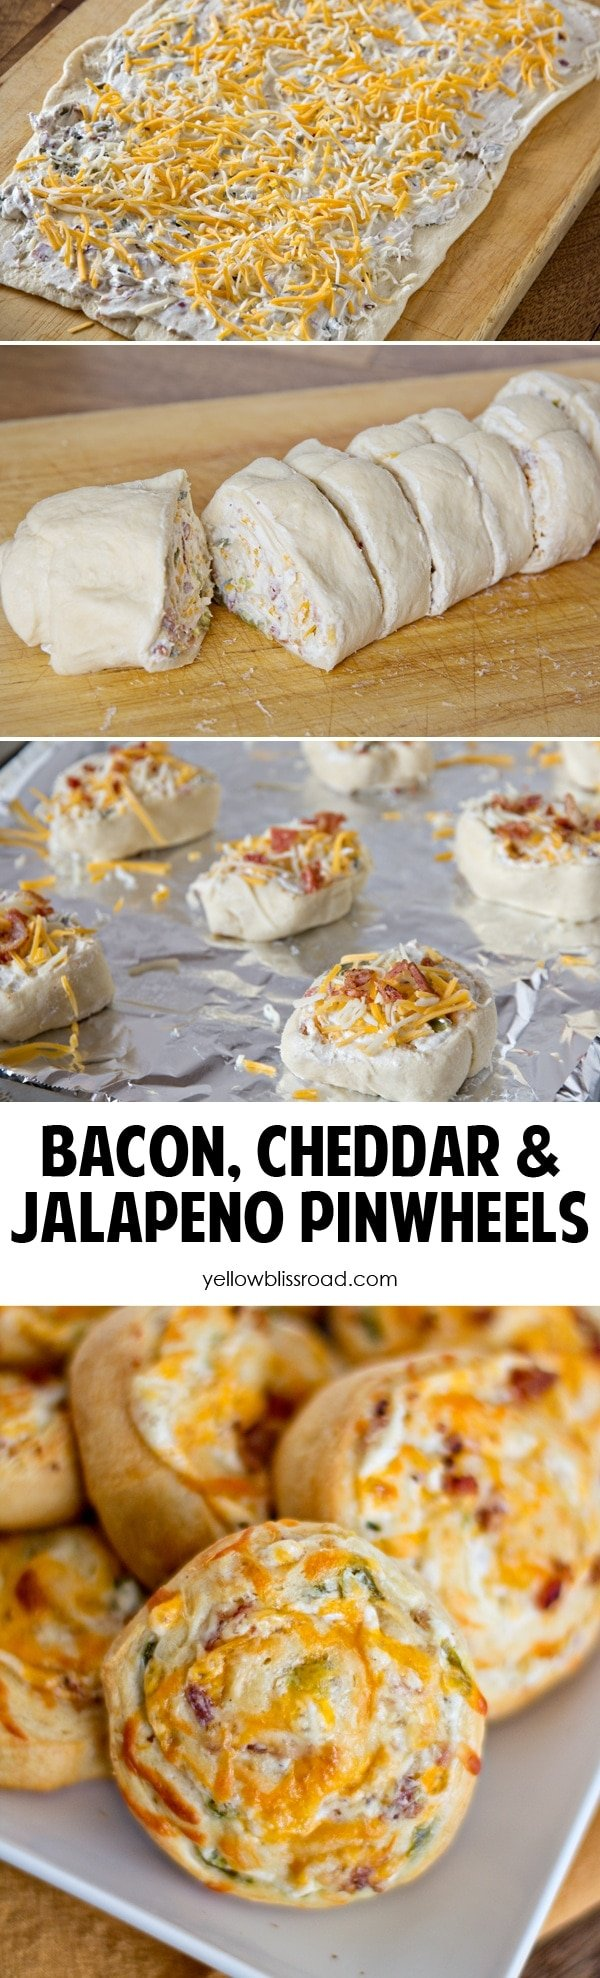 Bacon Cheddar Jalepeno Pinwheels collage